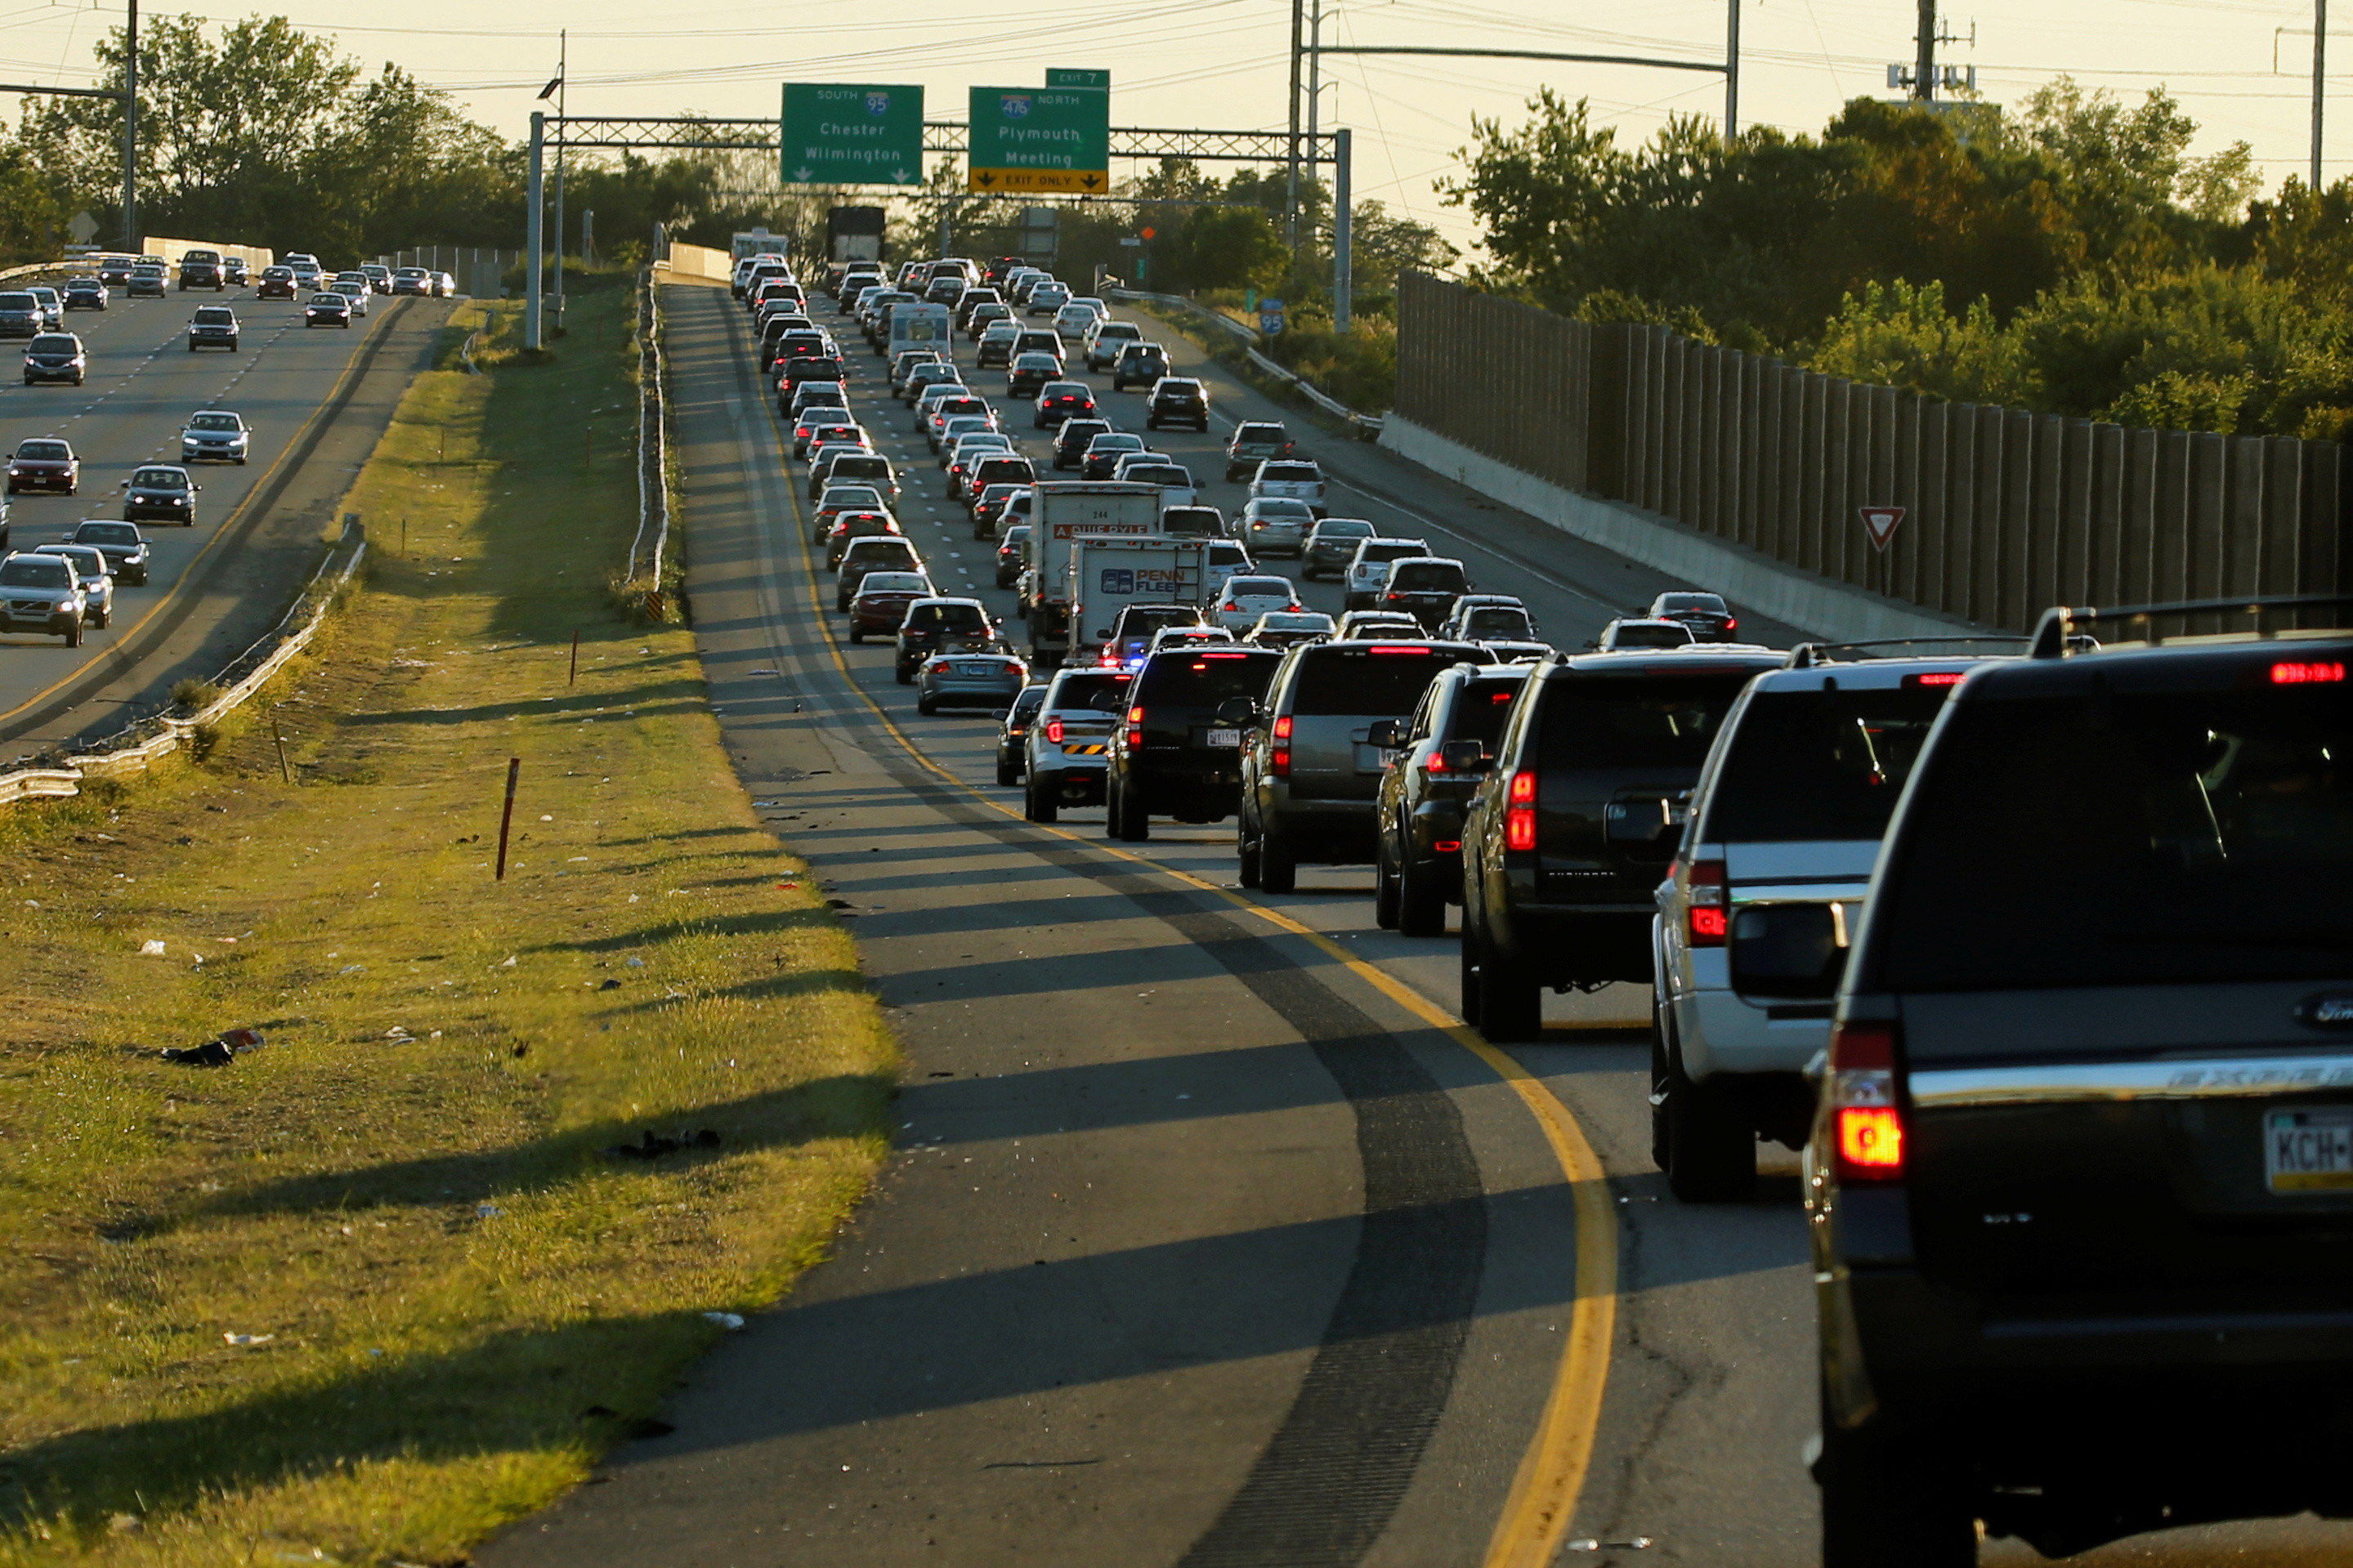 A line of SUV's making up Republican presidential nominee Donald Trump's motorcade navigate through rush hour traffic on Interstate 95 on their way to a rally with supporters in Aston, Pennsylvania, U.S. September 22, 2016. REUTERS/Jonathan Ernst - S1BEUCVYJOAA